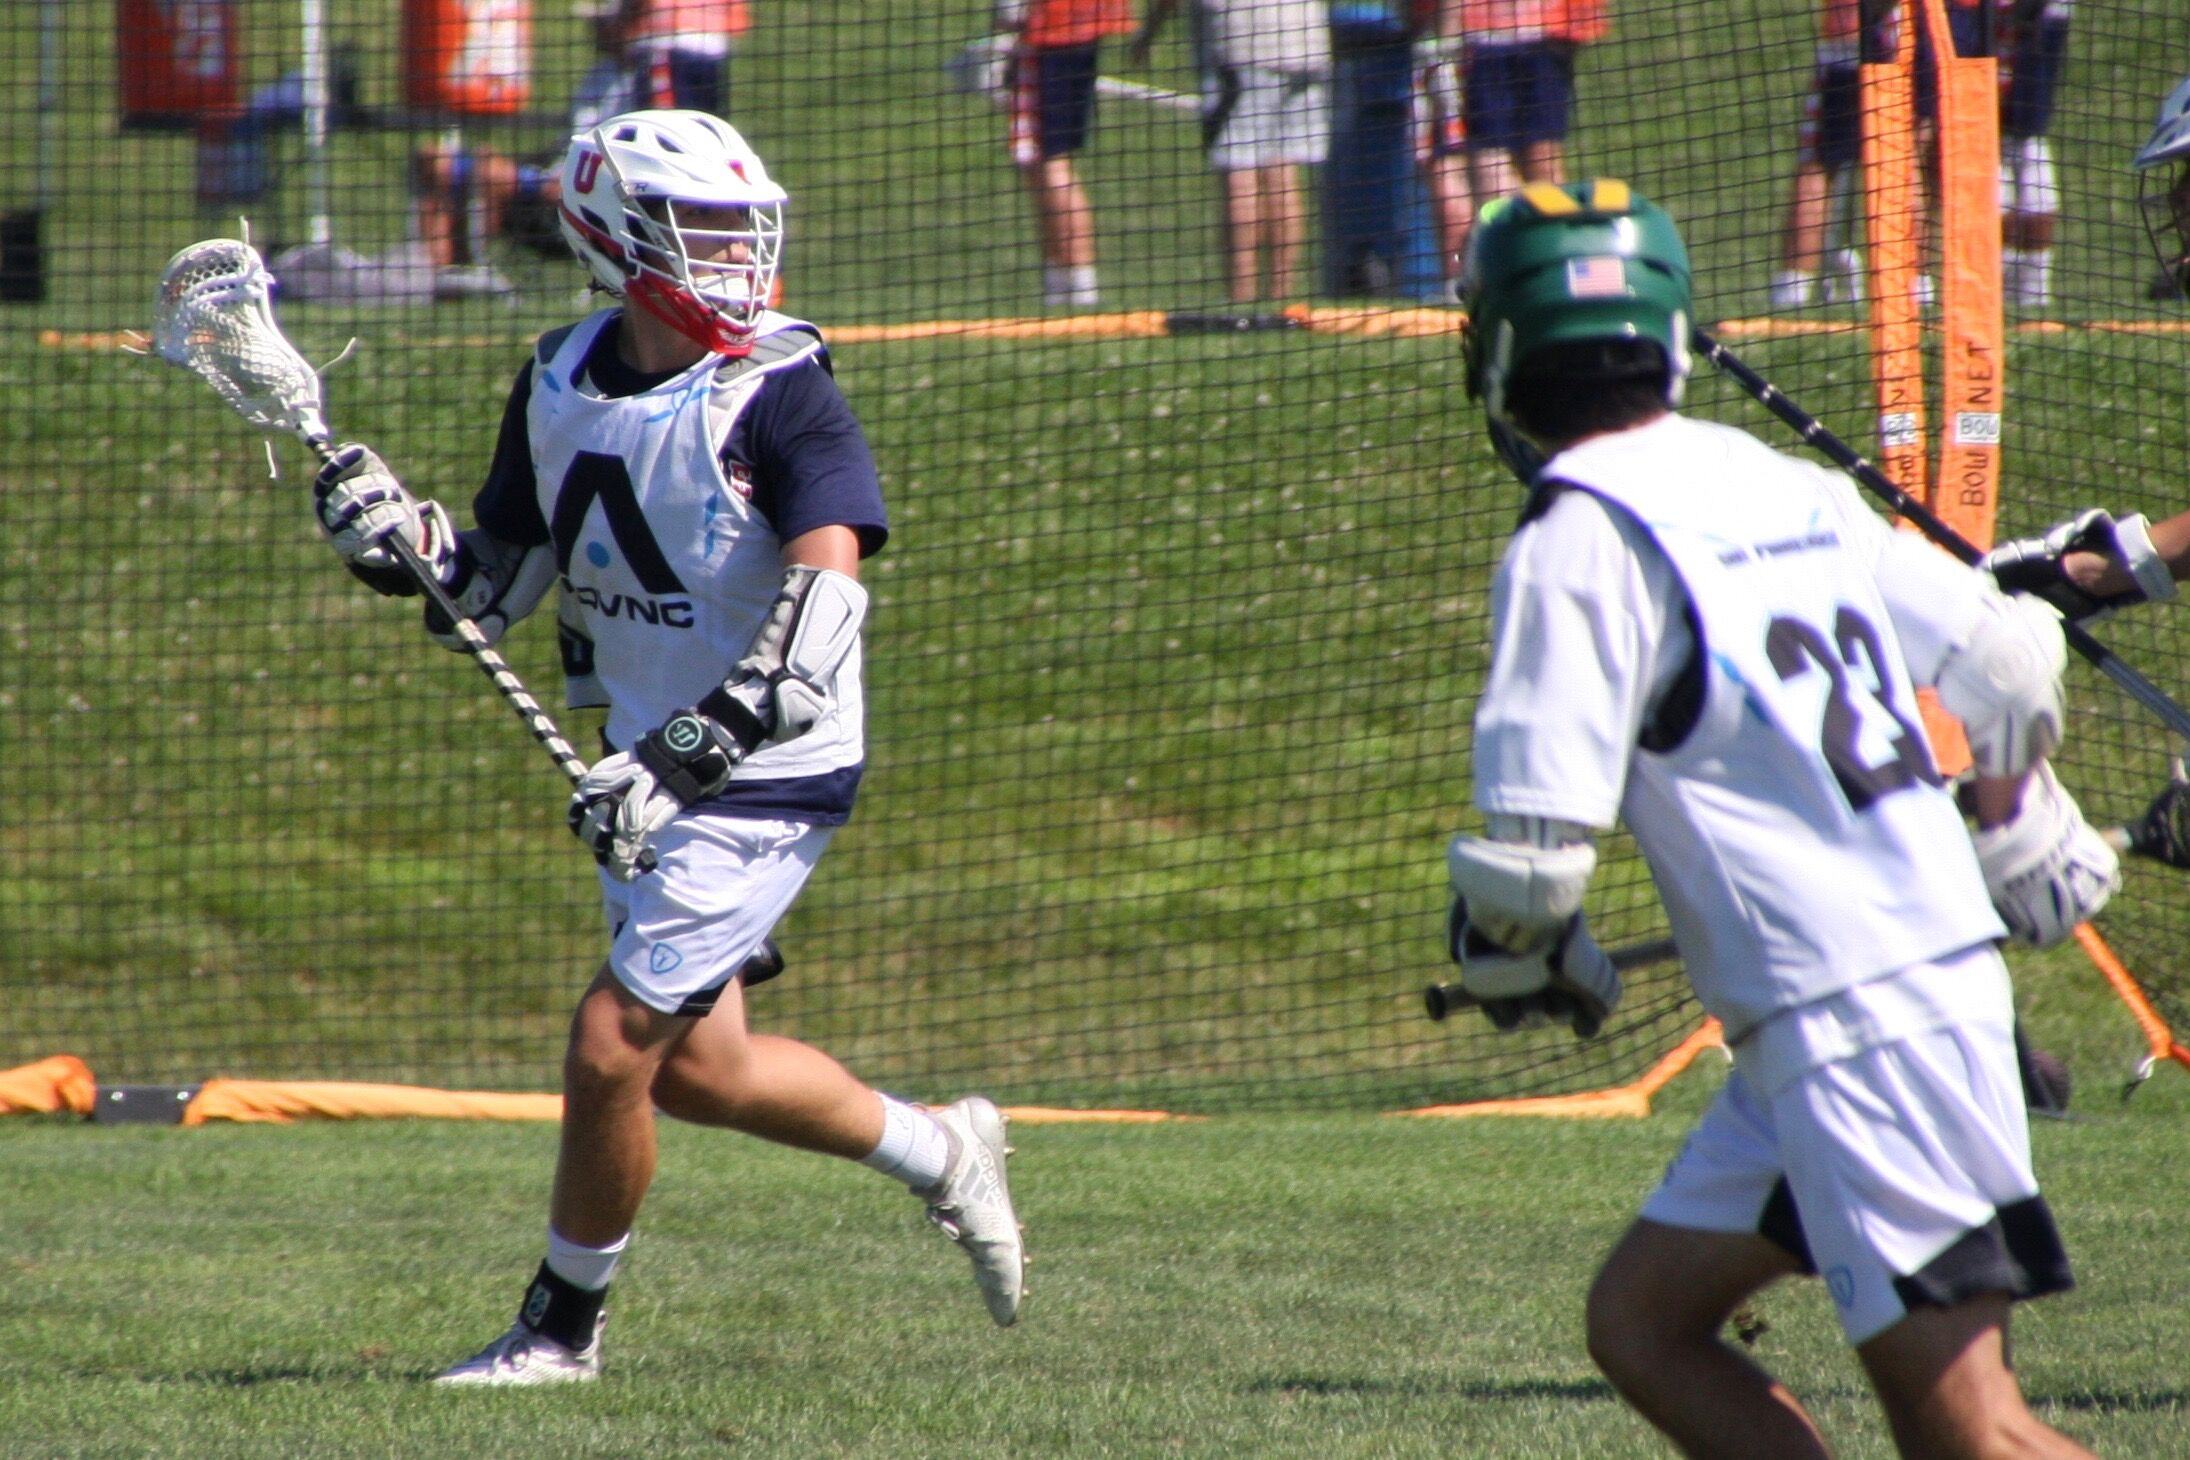 Solmssen plays both attack and middie for his ADVNC SF '20 squad